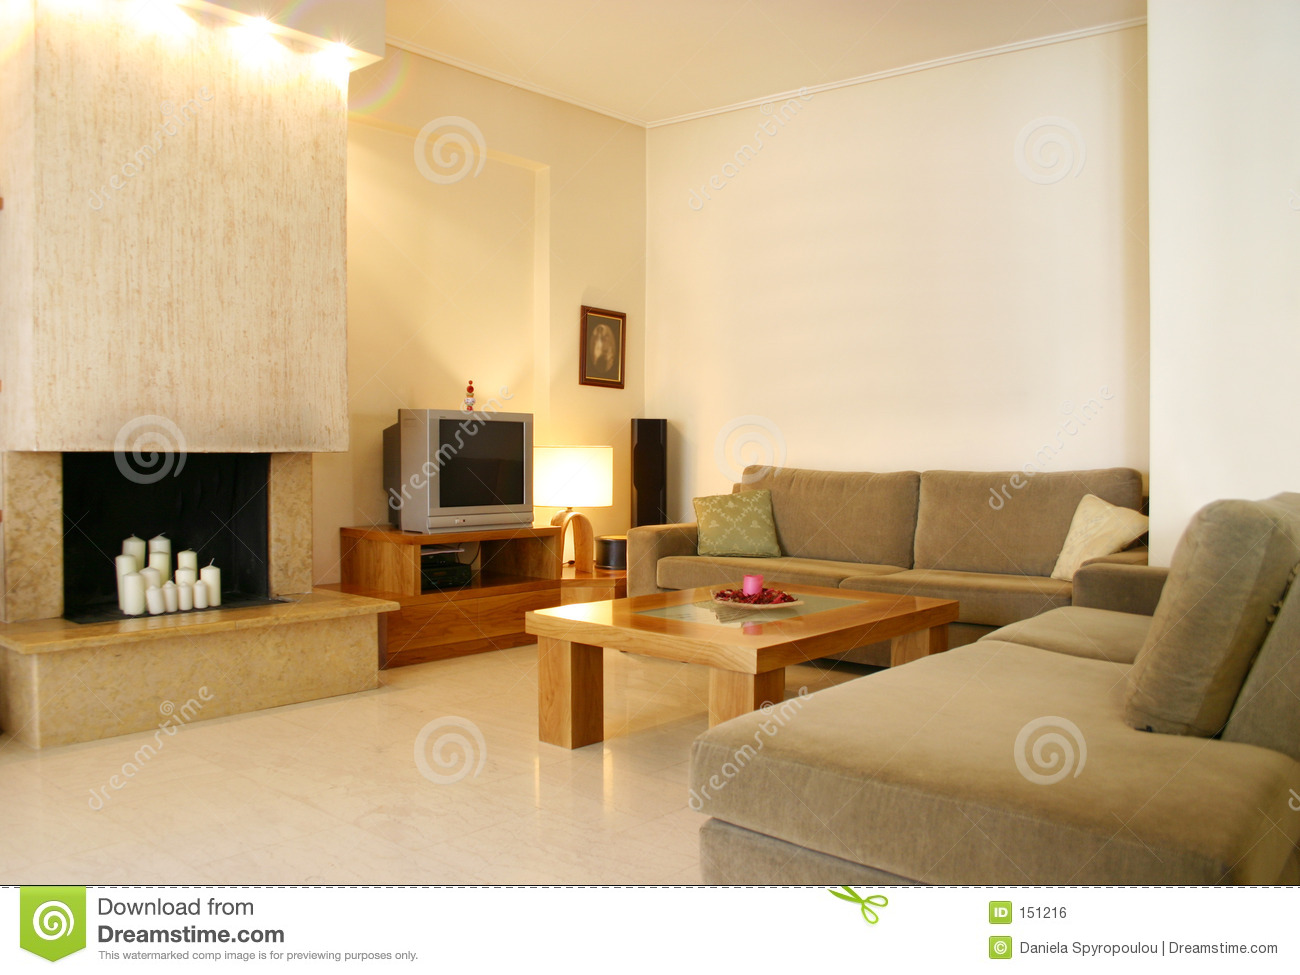 Home interior design stock photo image of modern decorating 151216 - House interior designs ...